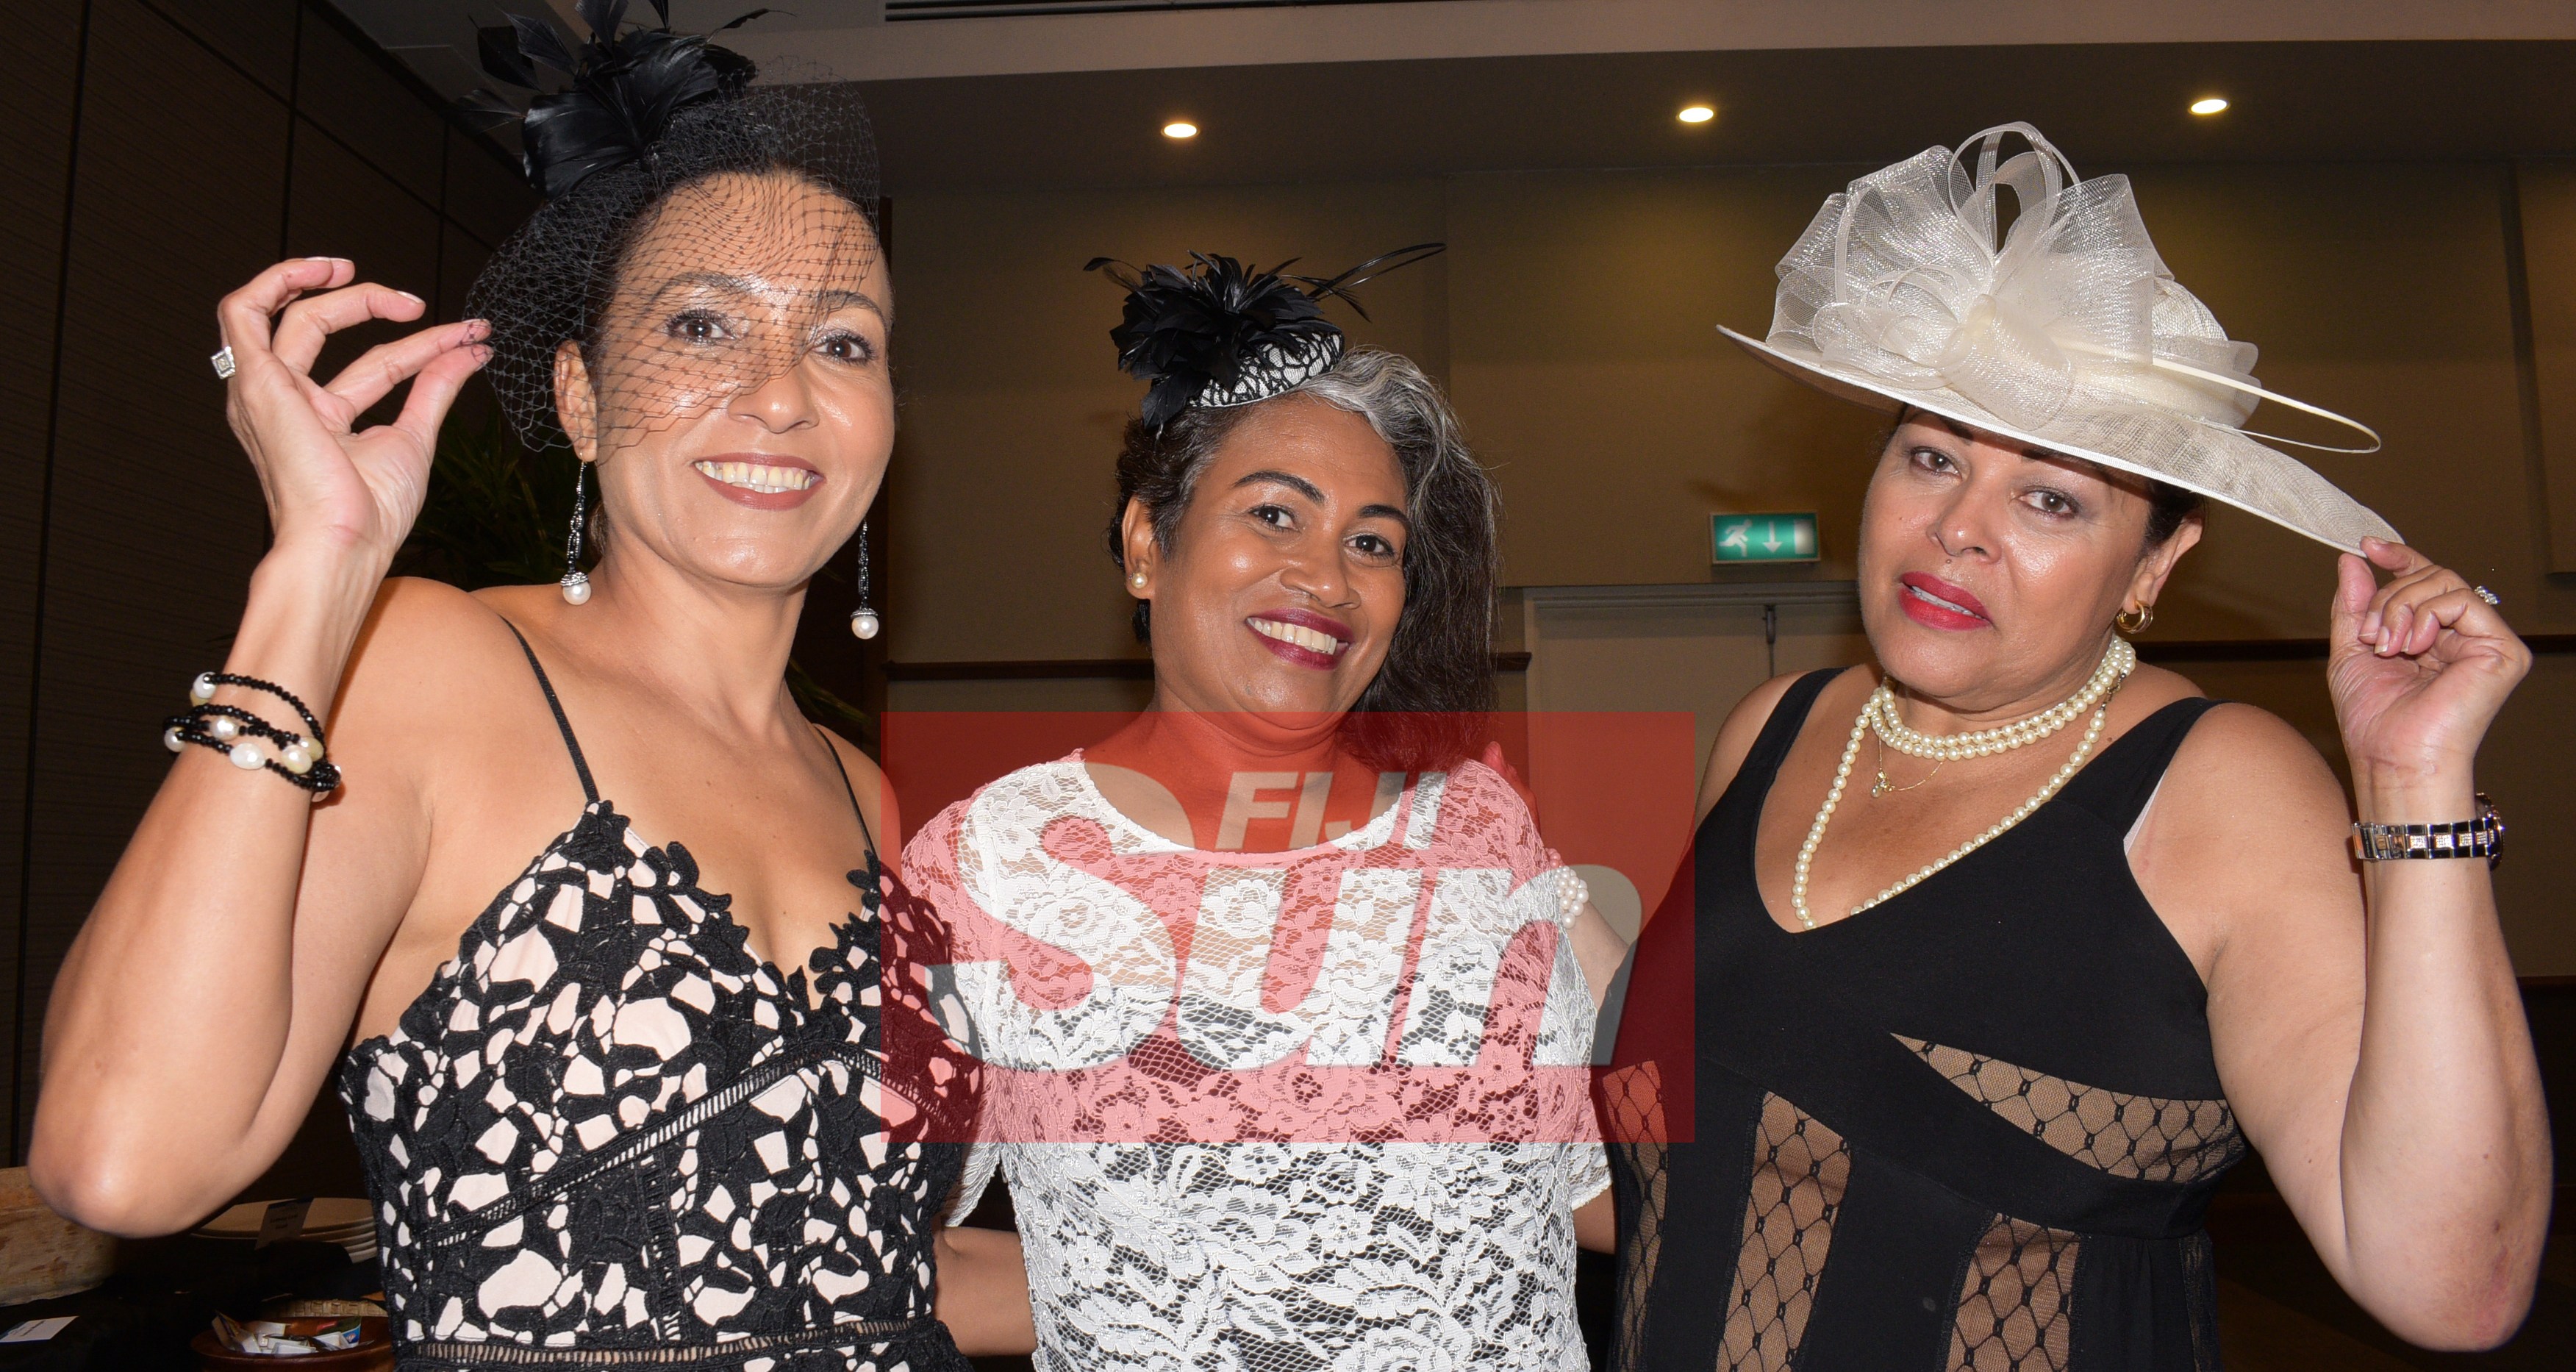 From left-Judy Compain, Mereita Mcarthy and Mere Nageshwar with their special Melbourne cup hats during Rotary Club Suva organized Melbourne Cup race event at Grand Pacific Hotel on November 5, 2019. Photo: Ronald Kumar.